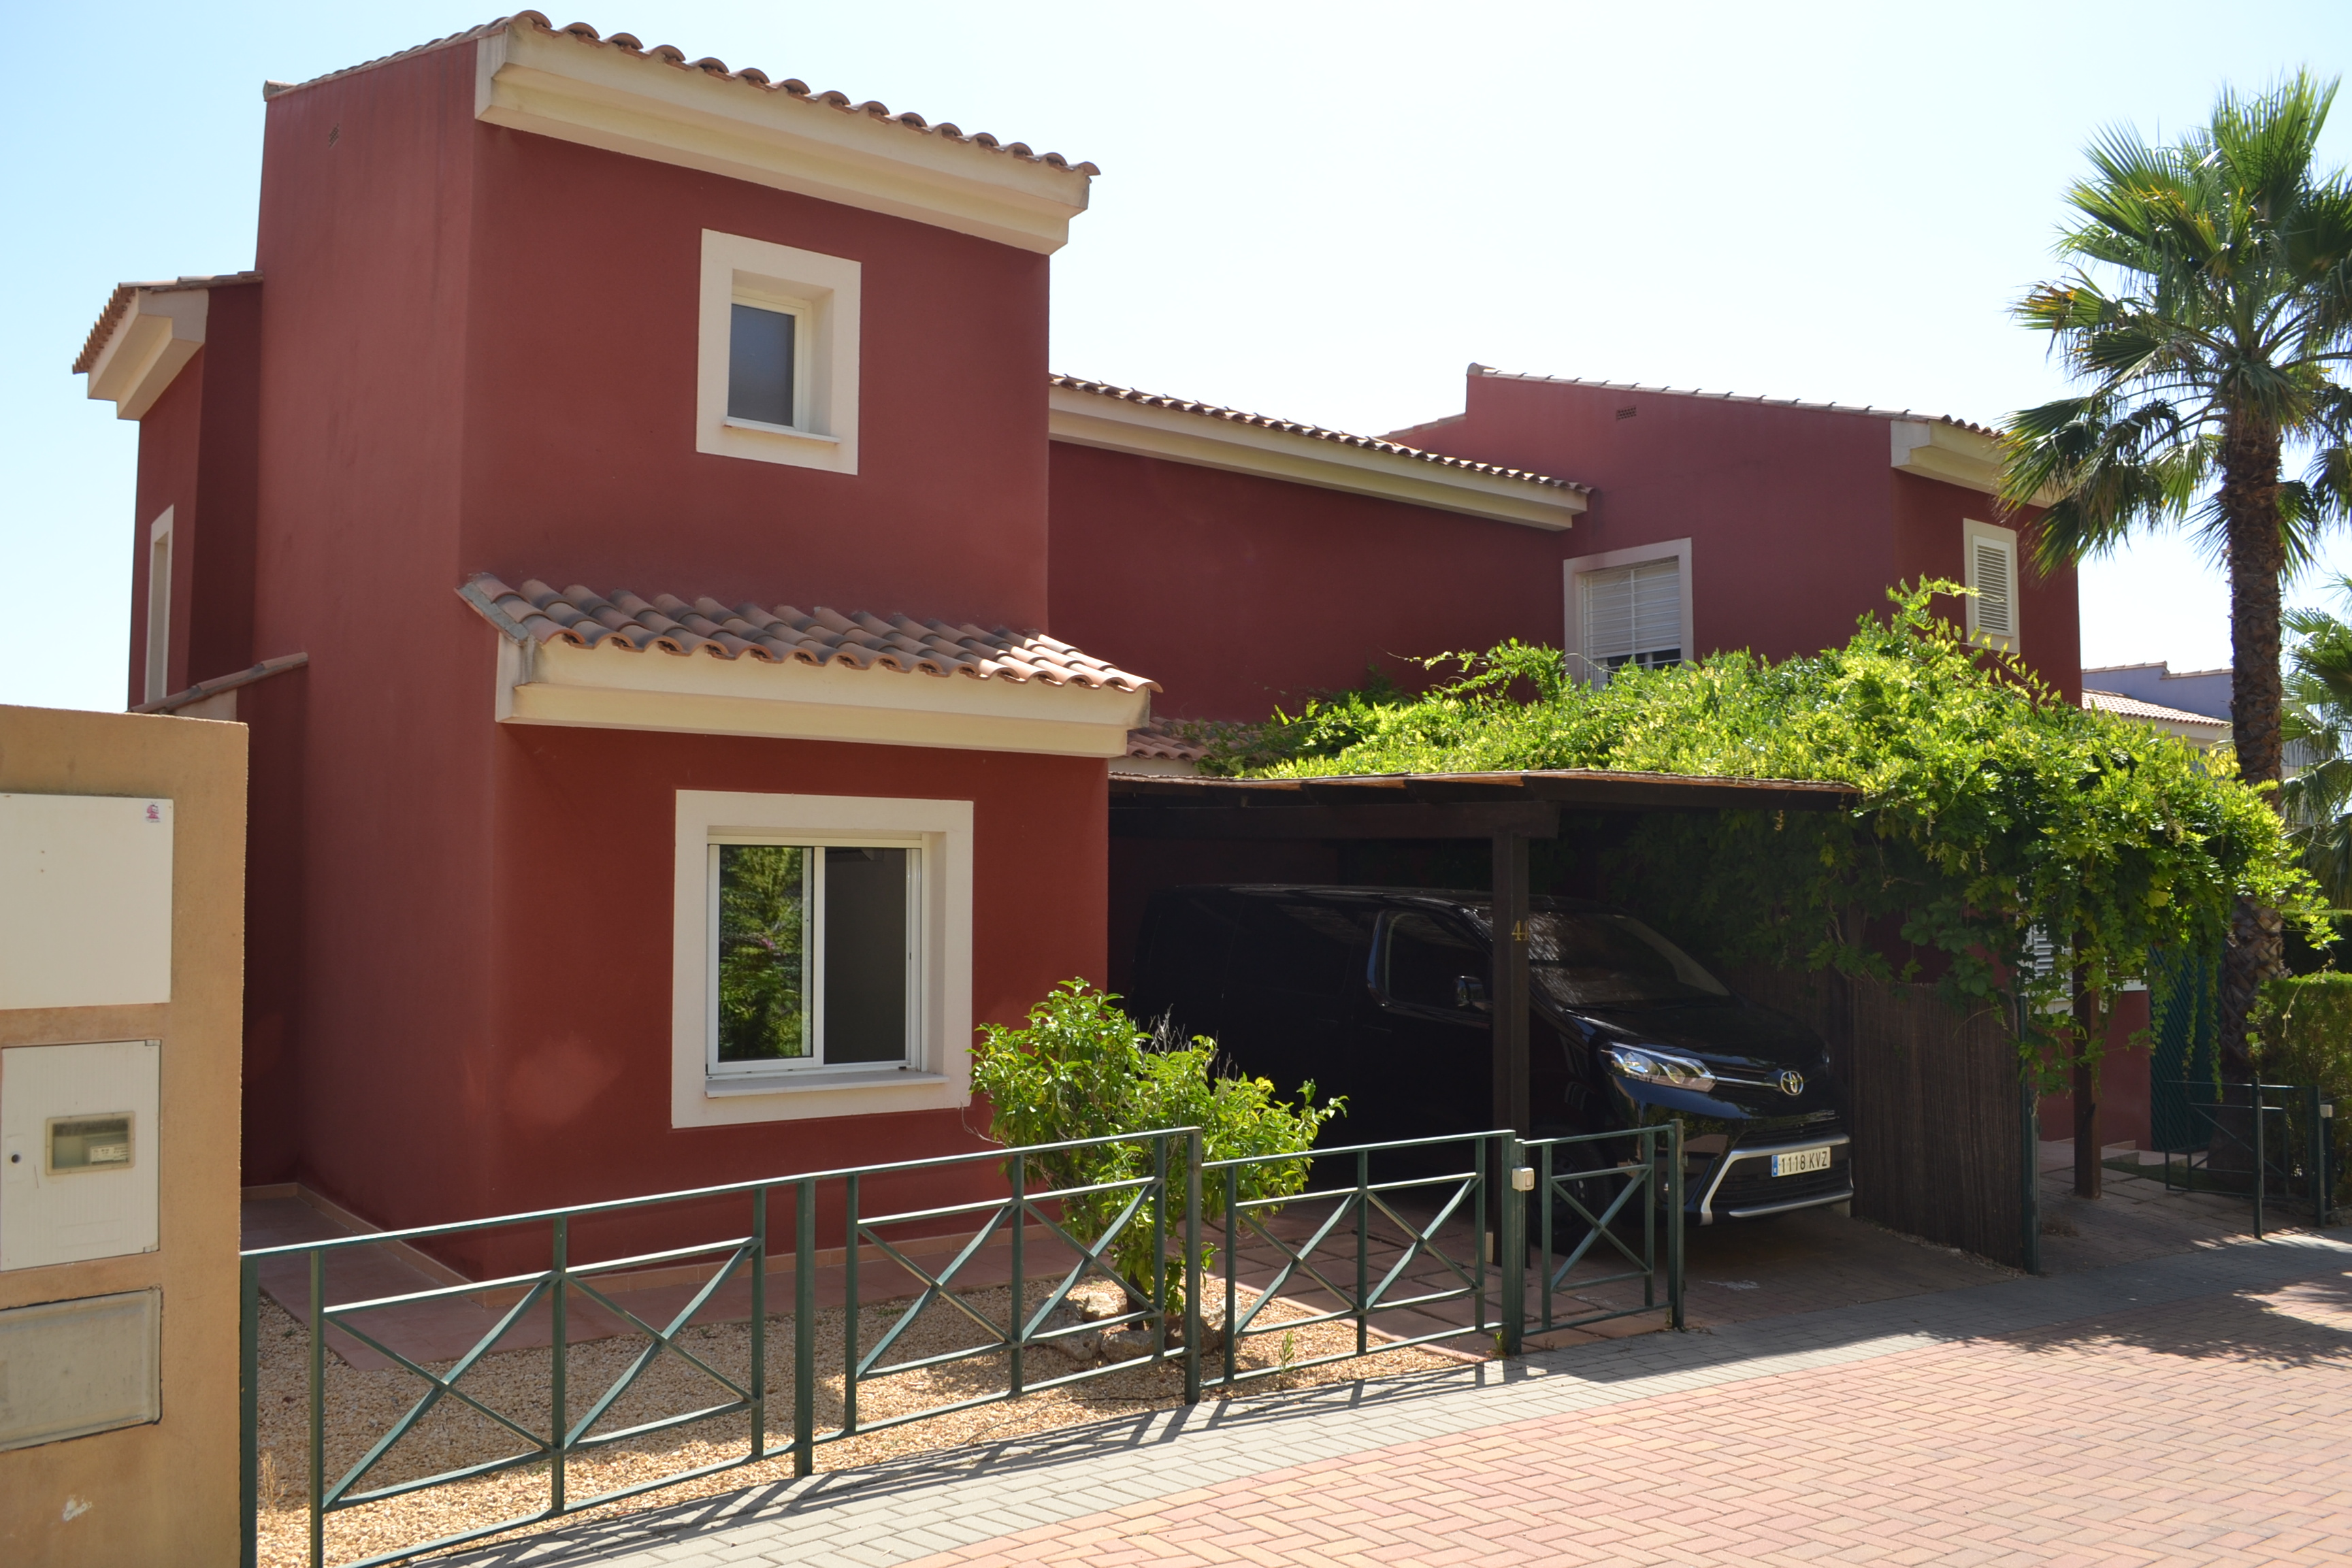 Large semidetached in Polop Paradise